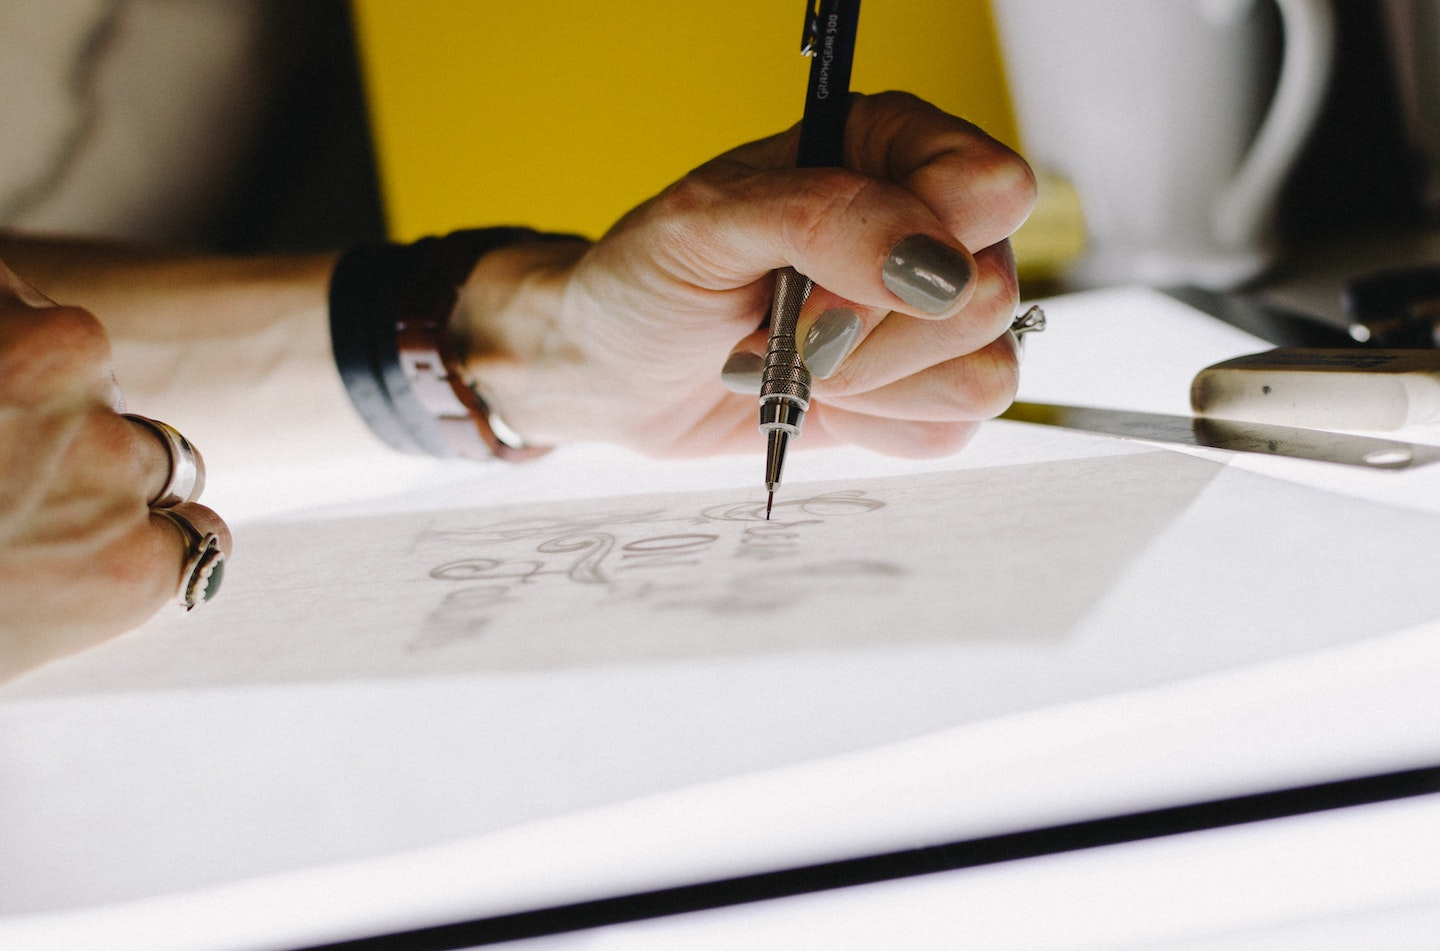 A close-up of someone tracing a graphic on a backlit surface.